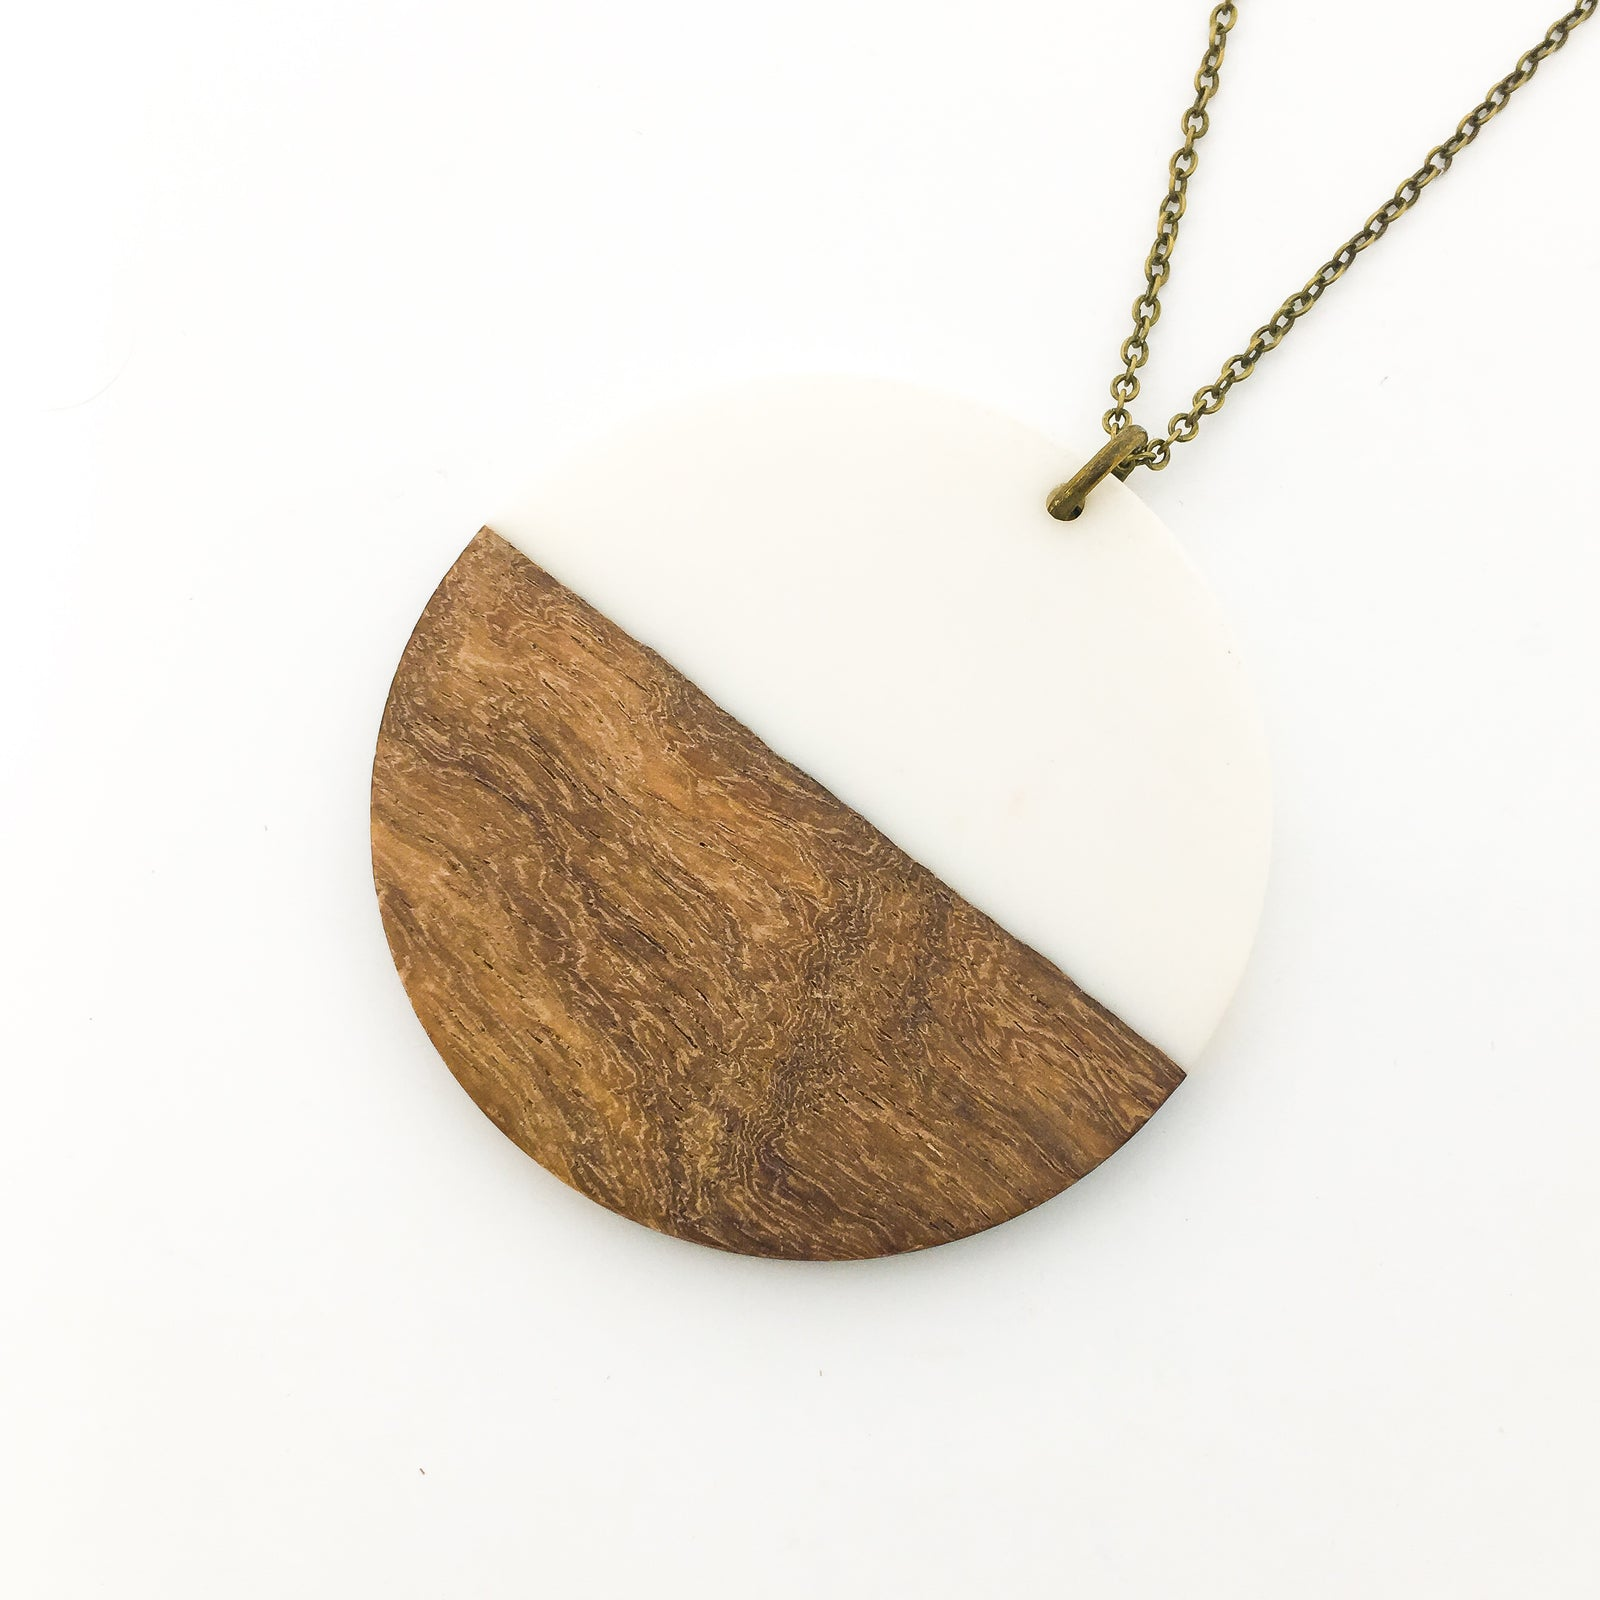 WOOD & RESIN NECKLACES | STYLE OPTIONS